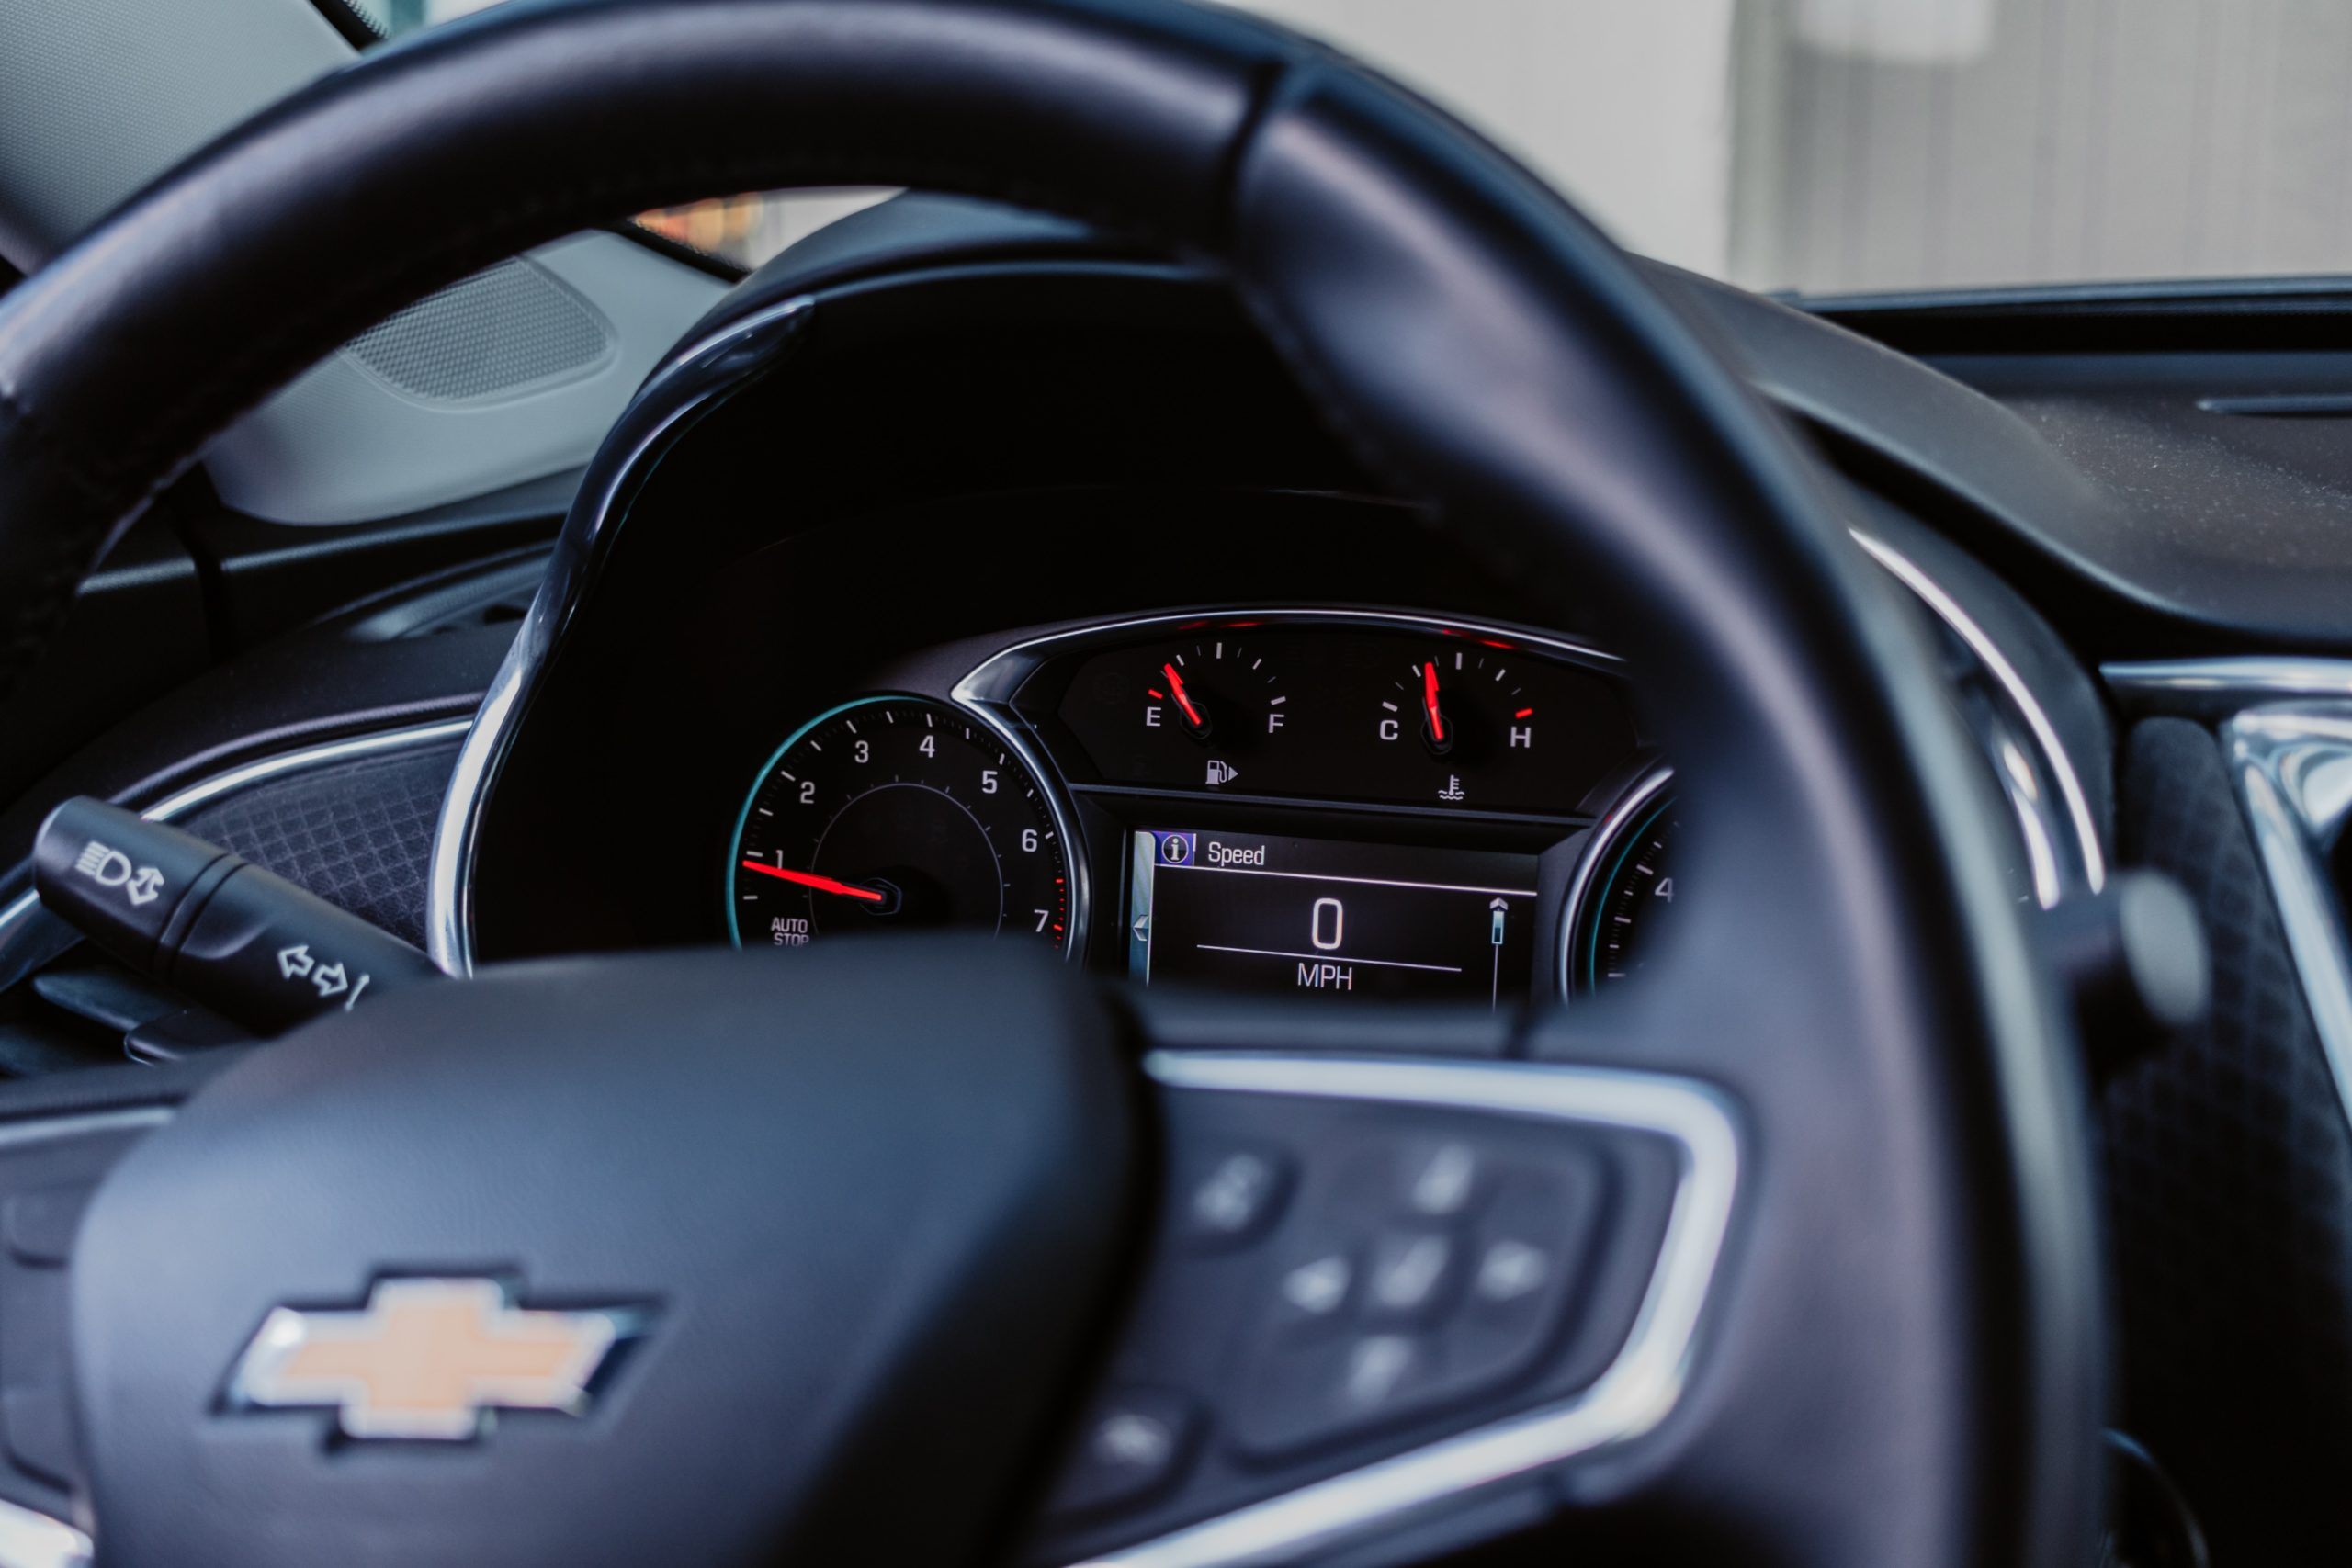 steering wheel of a car looking through to dashboard